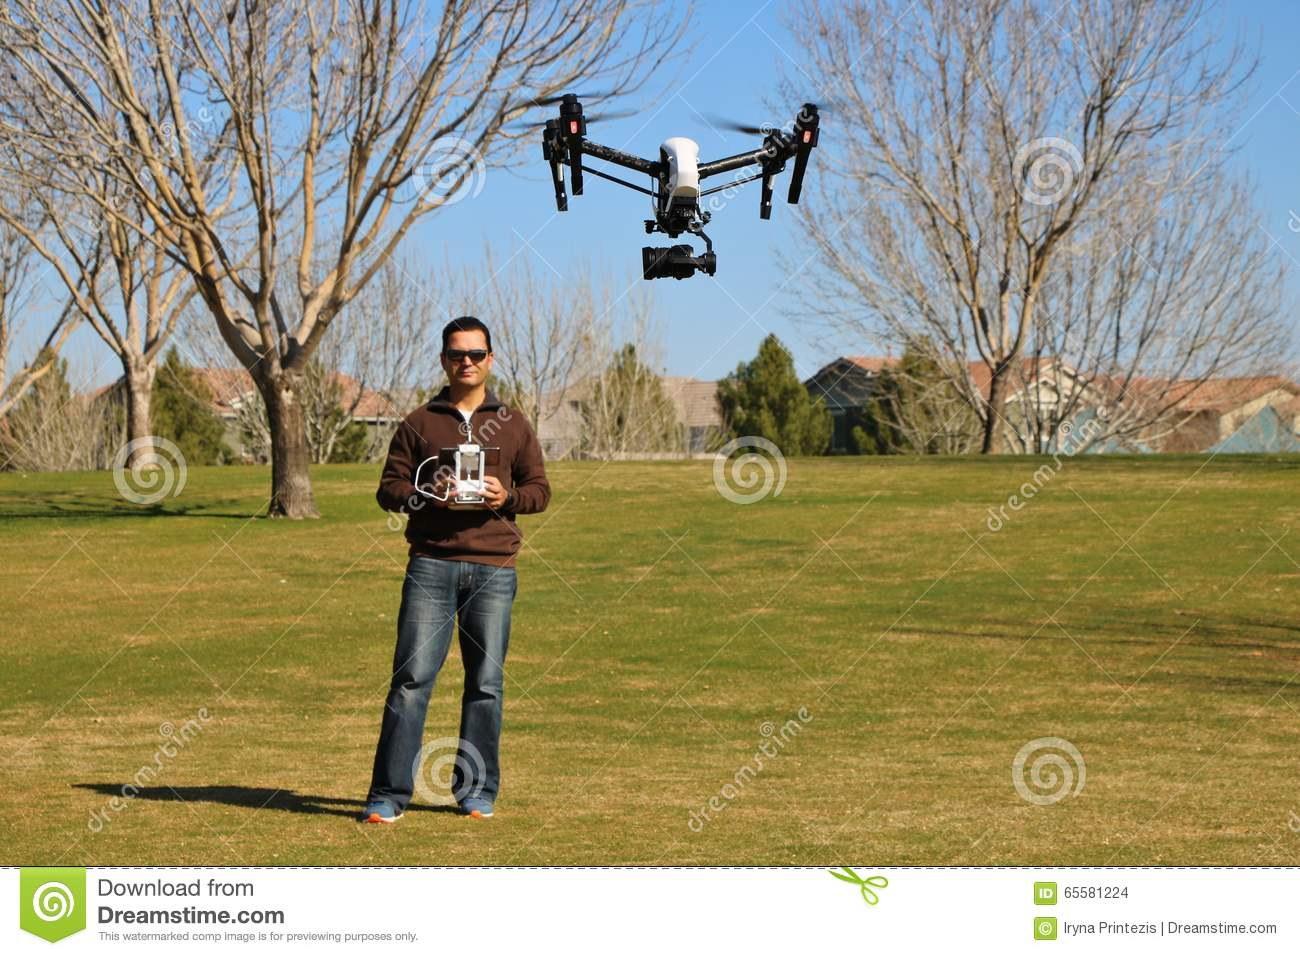 Man Flying a High-Tech Camera Drone